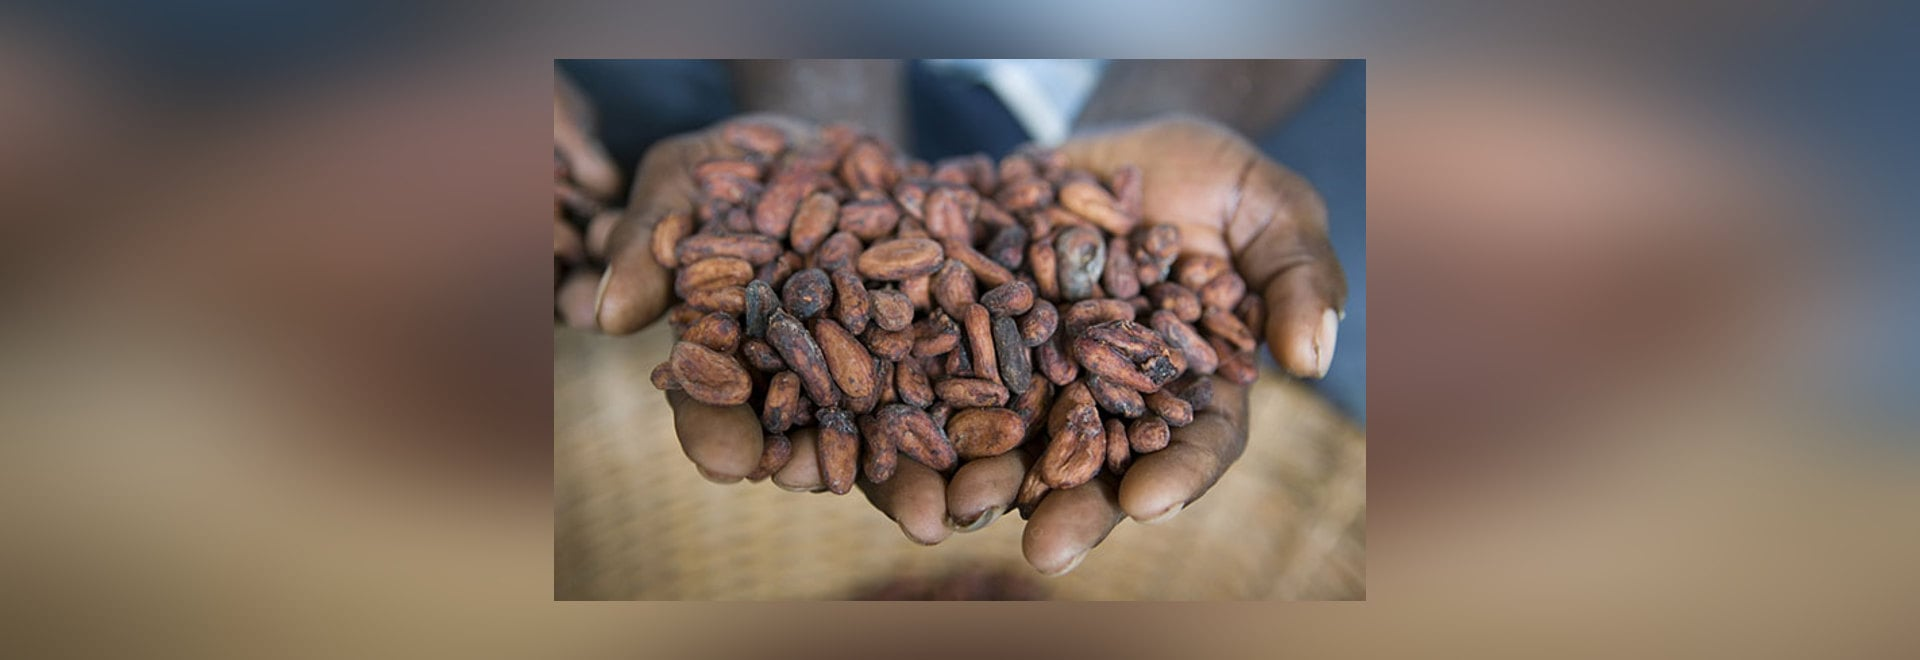 The facility has the capacity to process about 70,000t of cocoa beans per year.